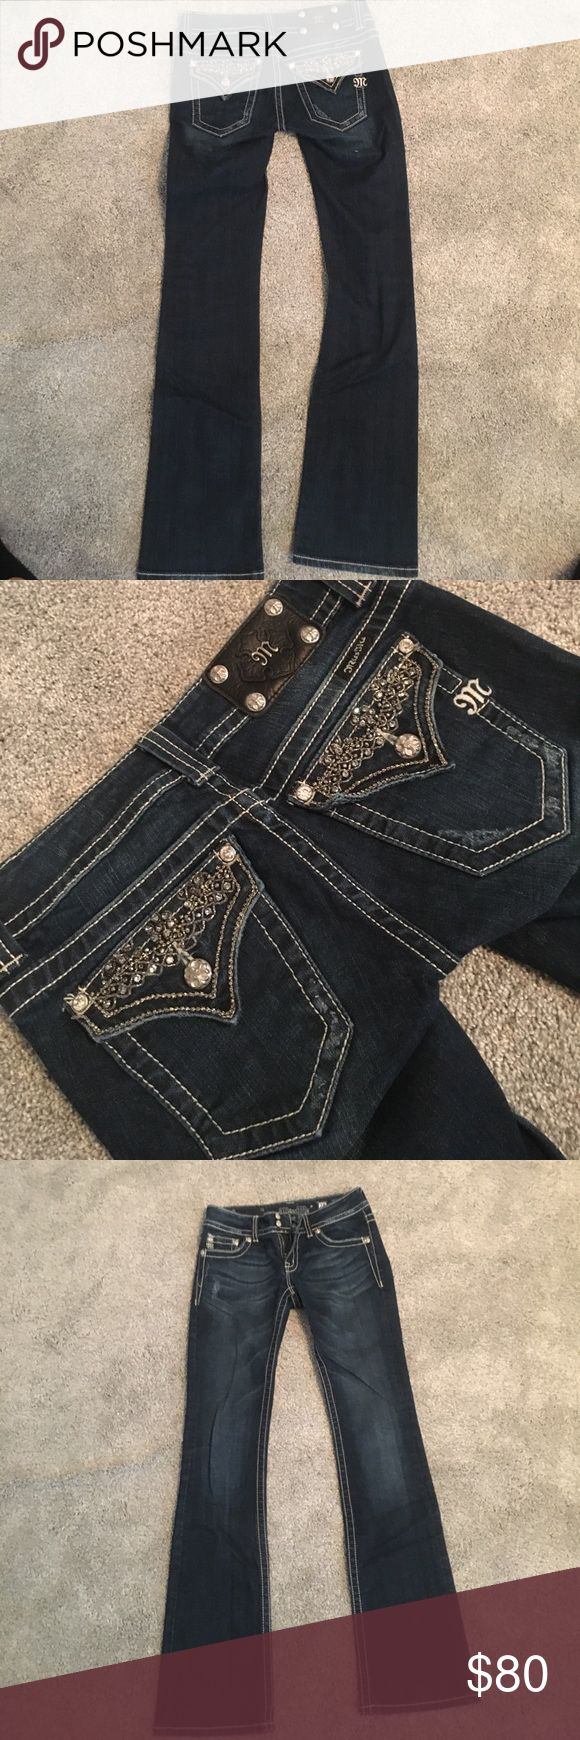 Miss Me brand dark wash flared jeans They are dark wash flared Miss Me branded jeans. The pockets in the back are studded with silver jewels. Worn under 5 times and in great condition. Miss Me Jeans Flare & Wide Leg